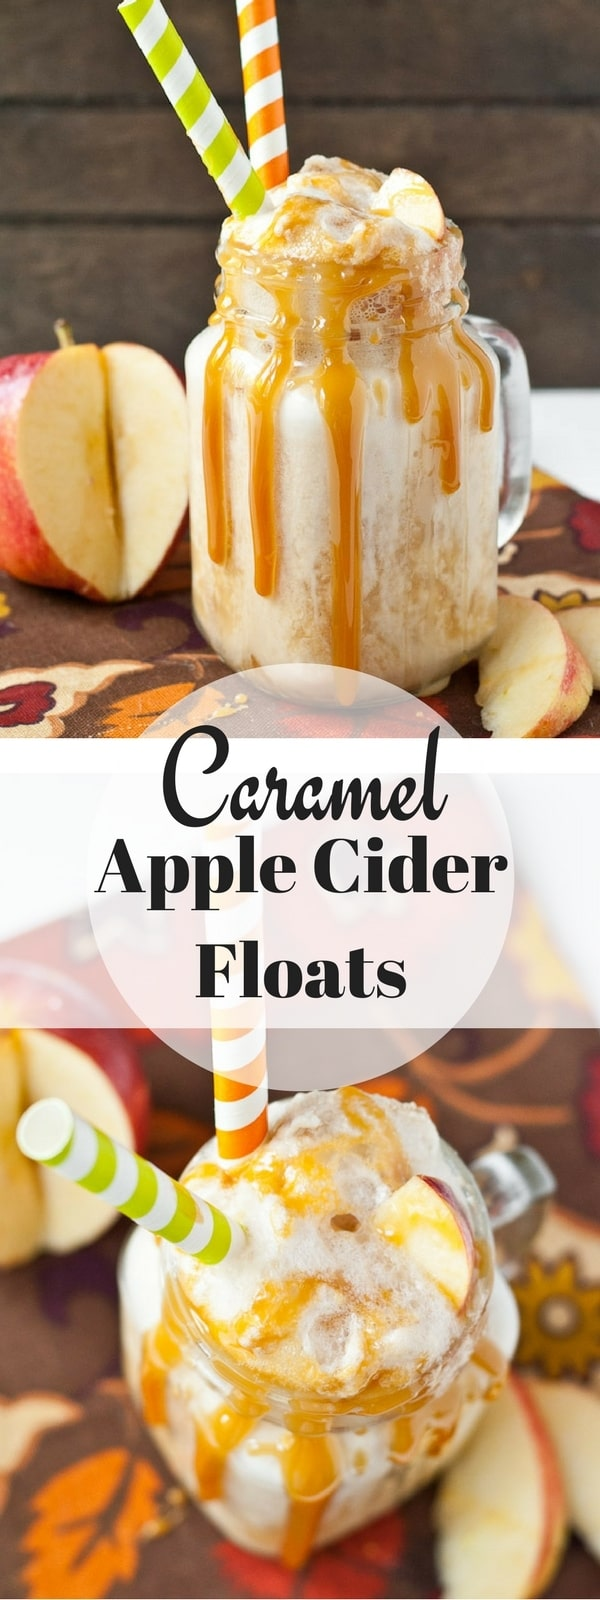 These Caramel Apple Cider Floats will blow your mind! This is my favorite easy fall dessert!